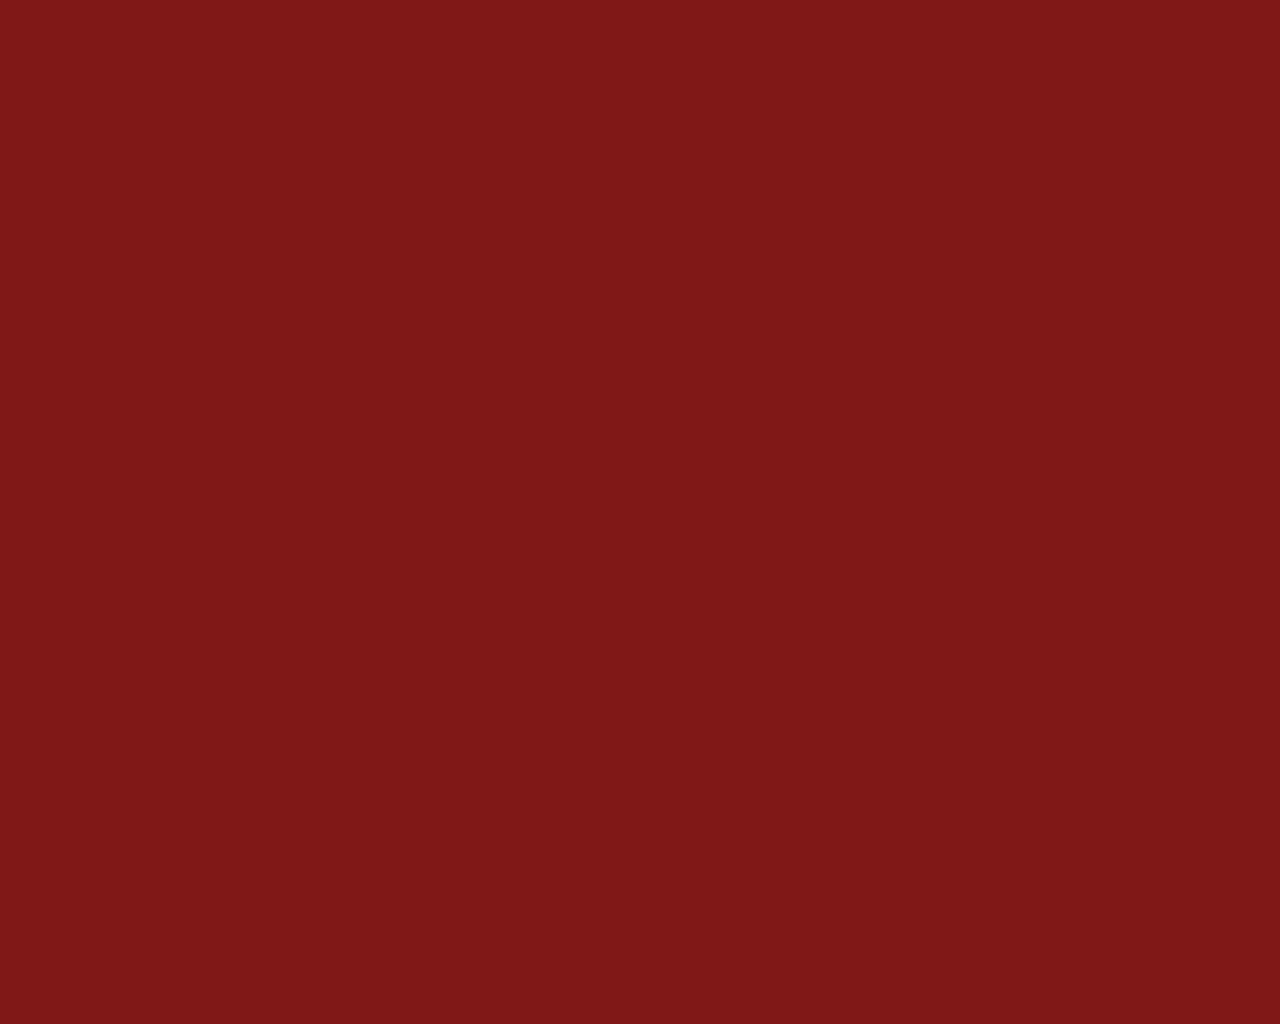 1280x1024 Falu Red Solid Color Background